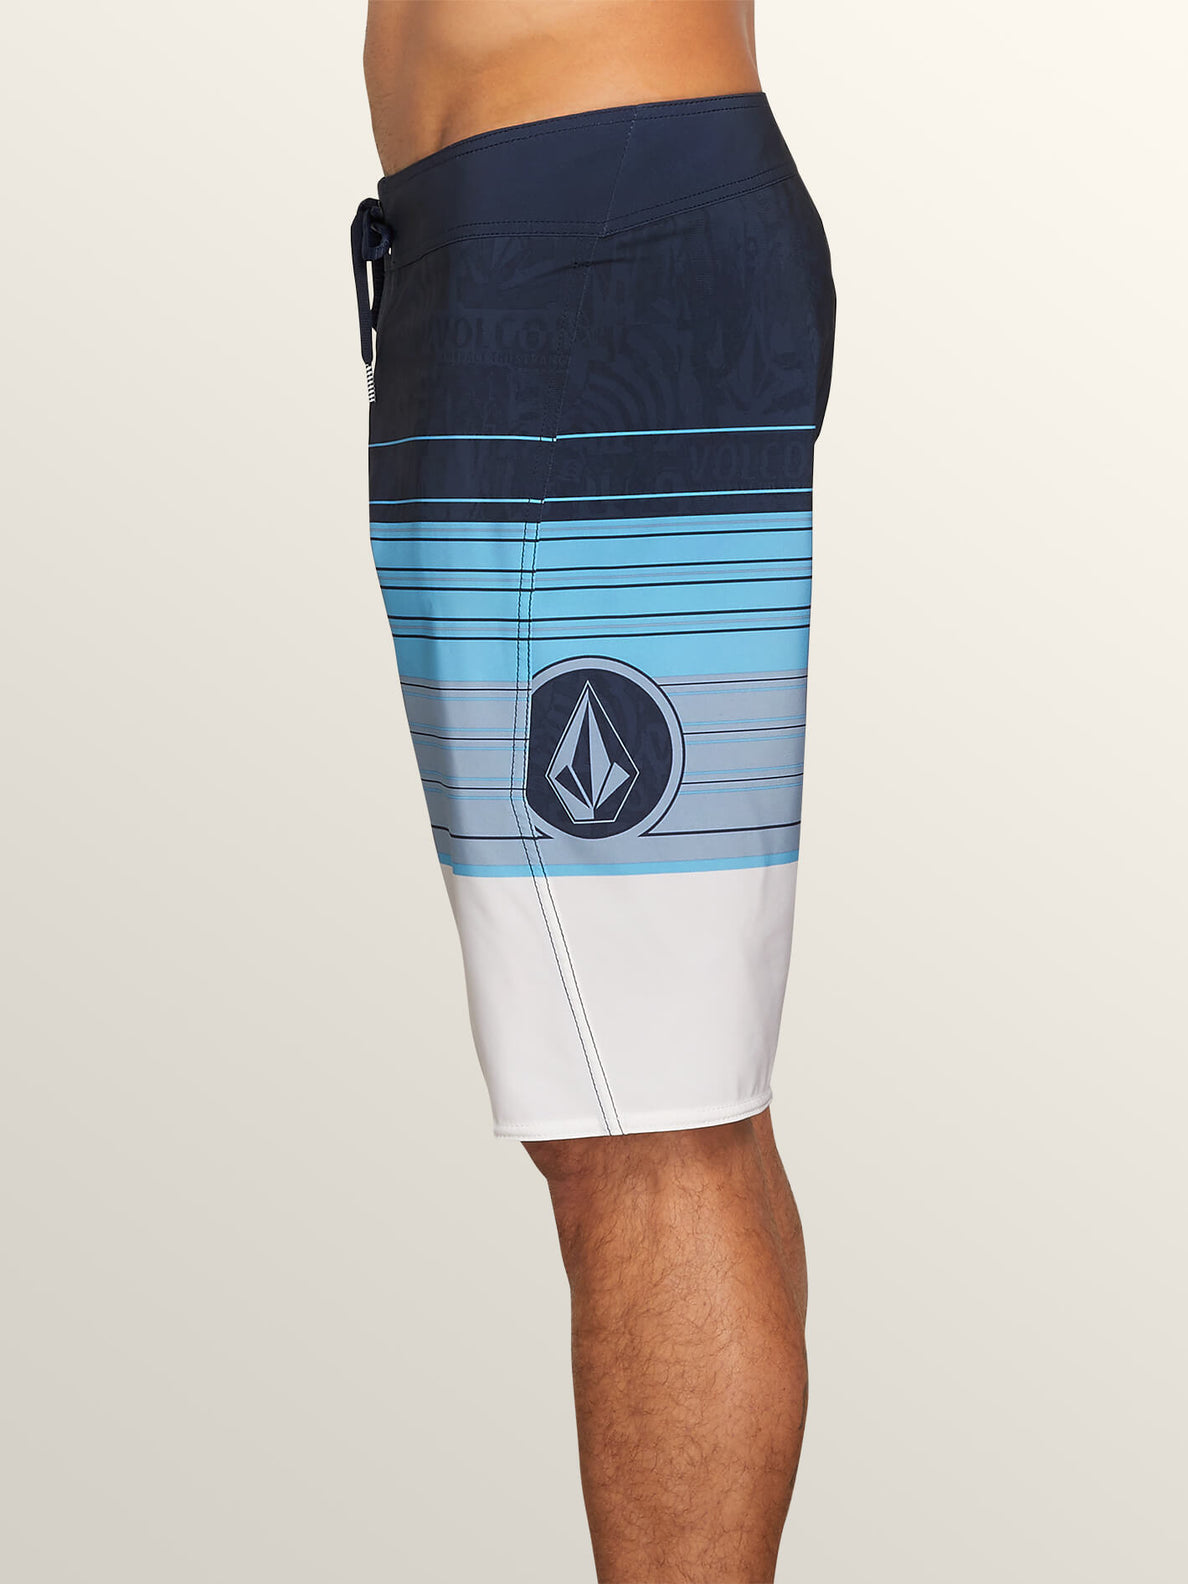 Lido Liney Mod Boardshorts In Melindigo, Alternate View